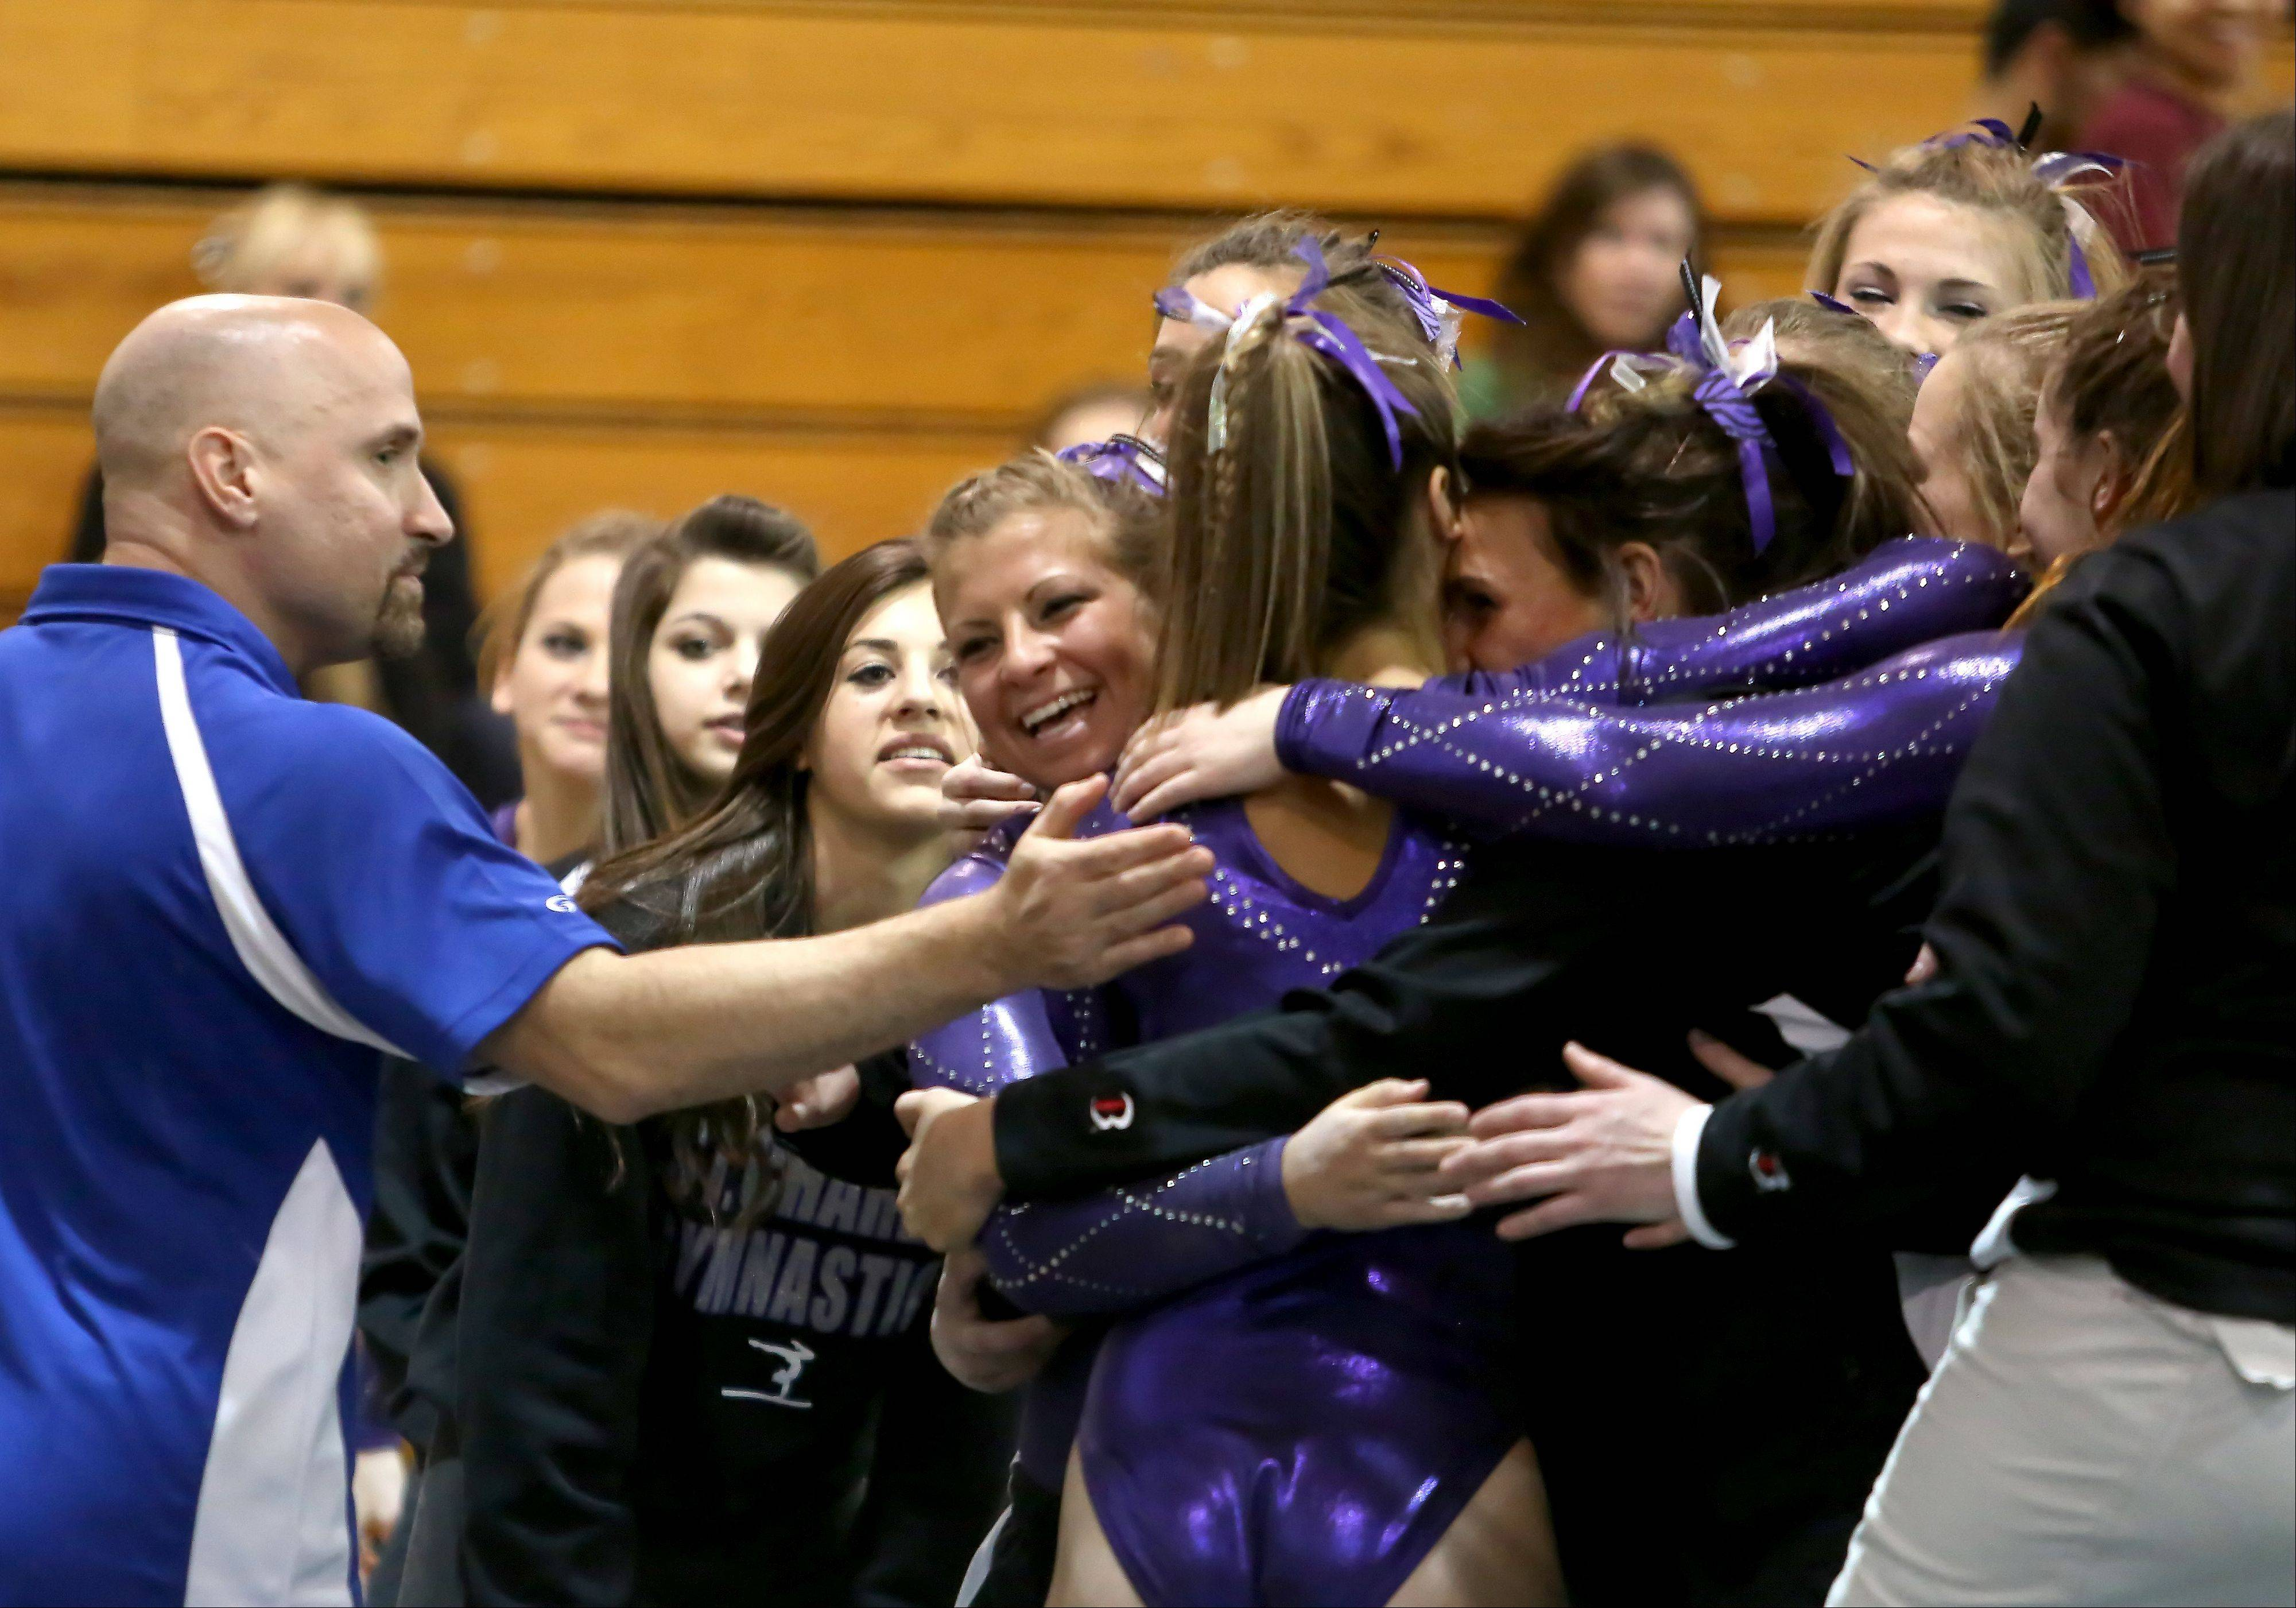 Sam Upshaw of St. Charles co-op, is congratulated by her teammates after her beam routine at the sectional gymnastics championship at Glenbard West on Tuesday in Glen Ellyn.